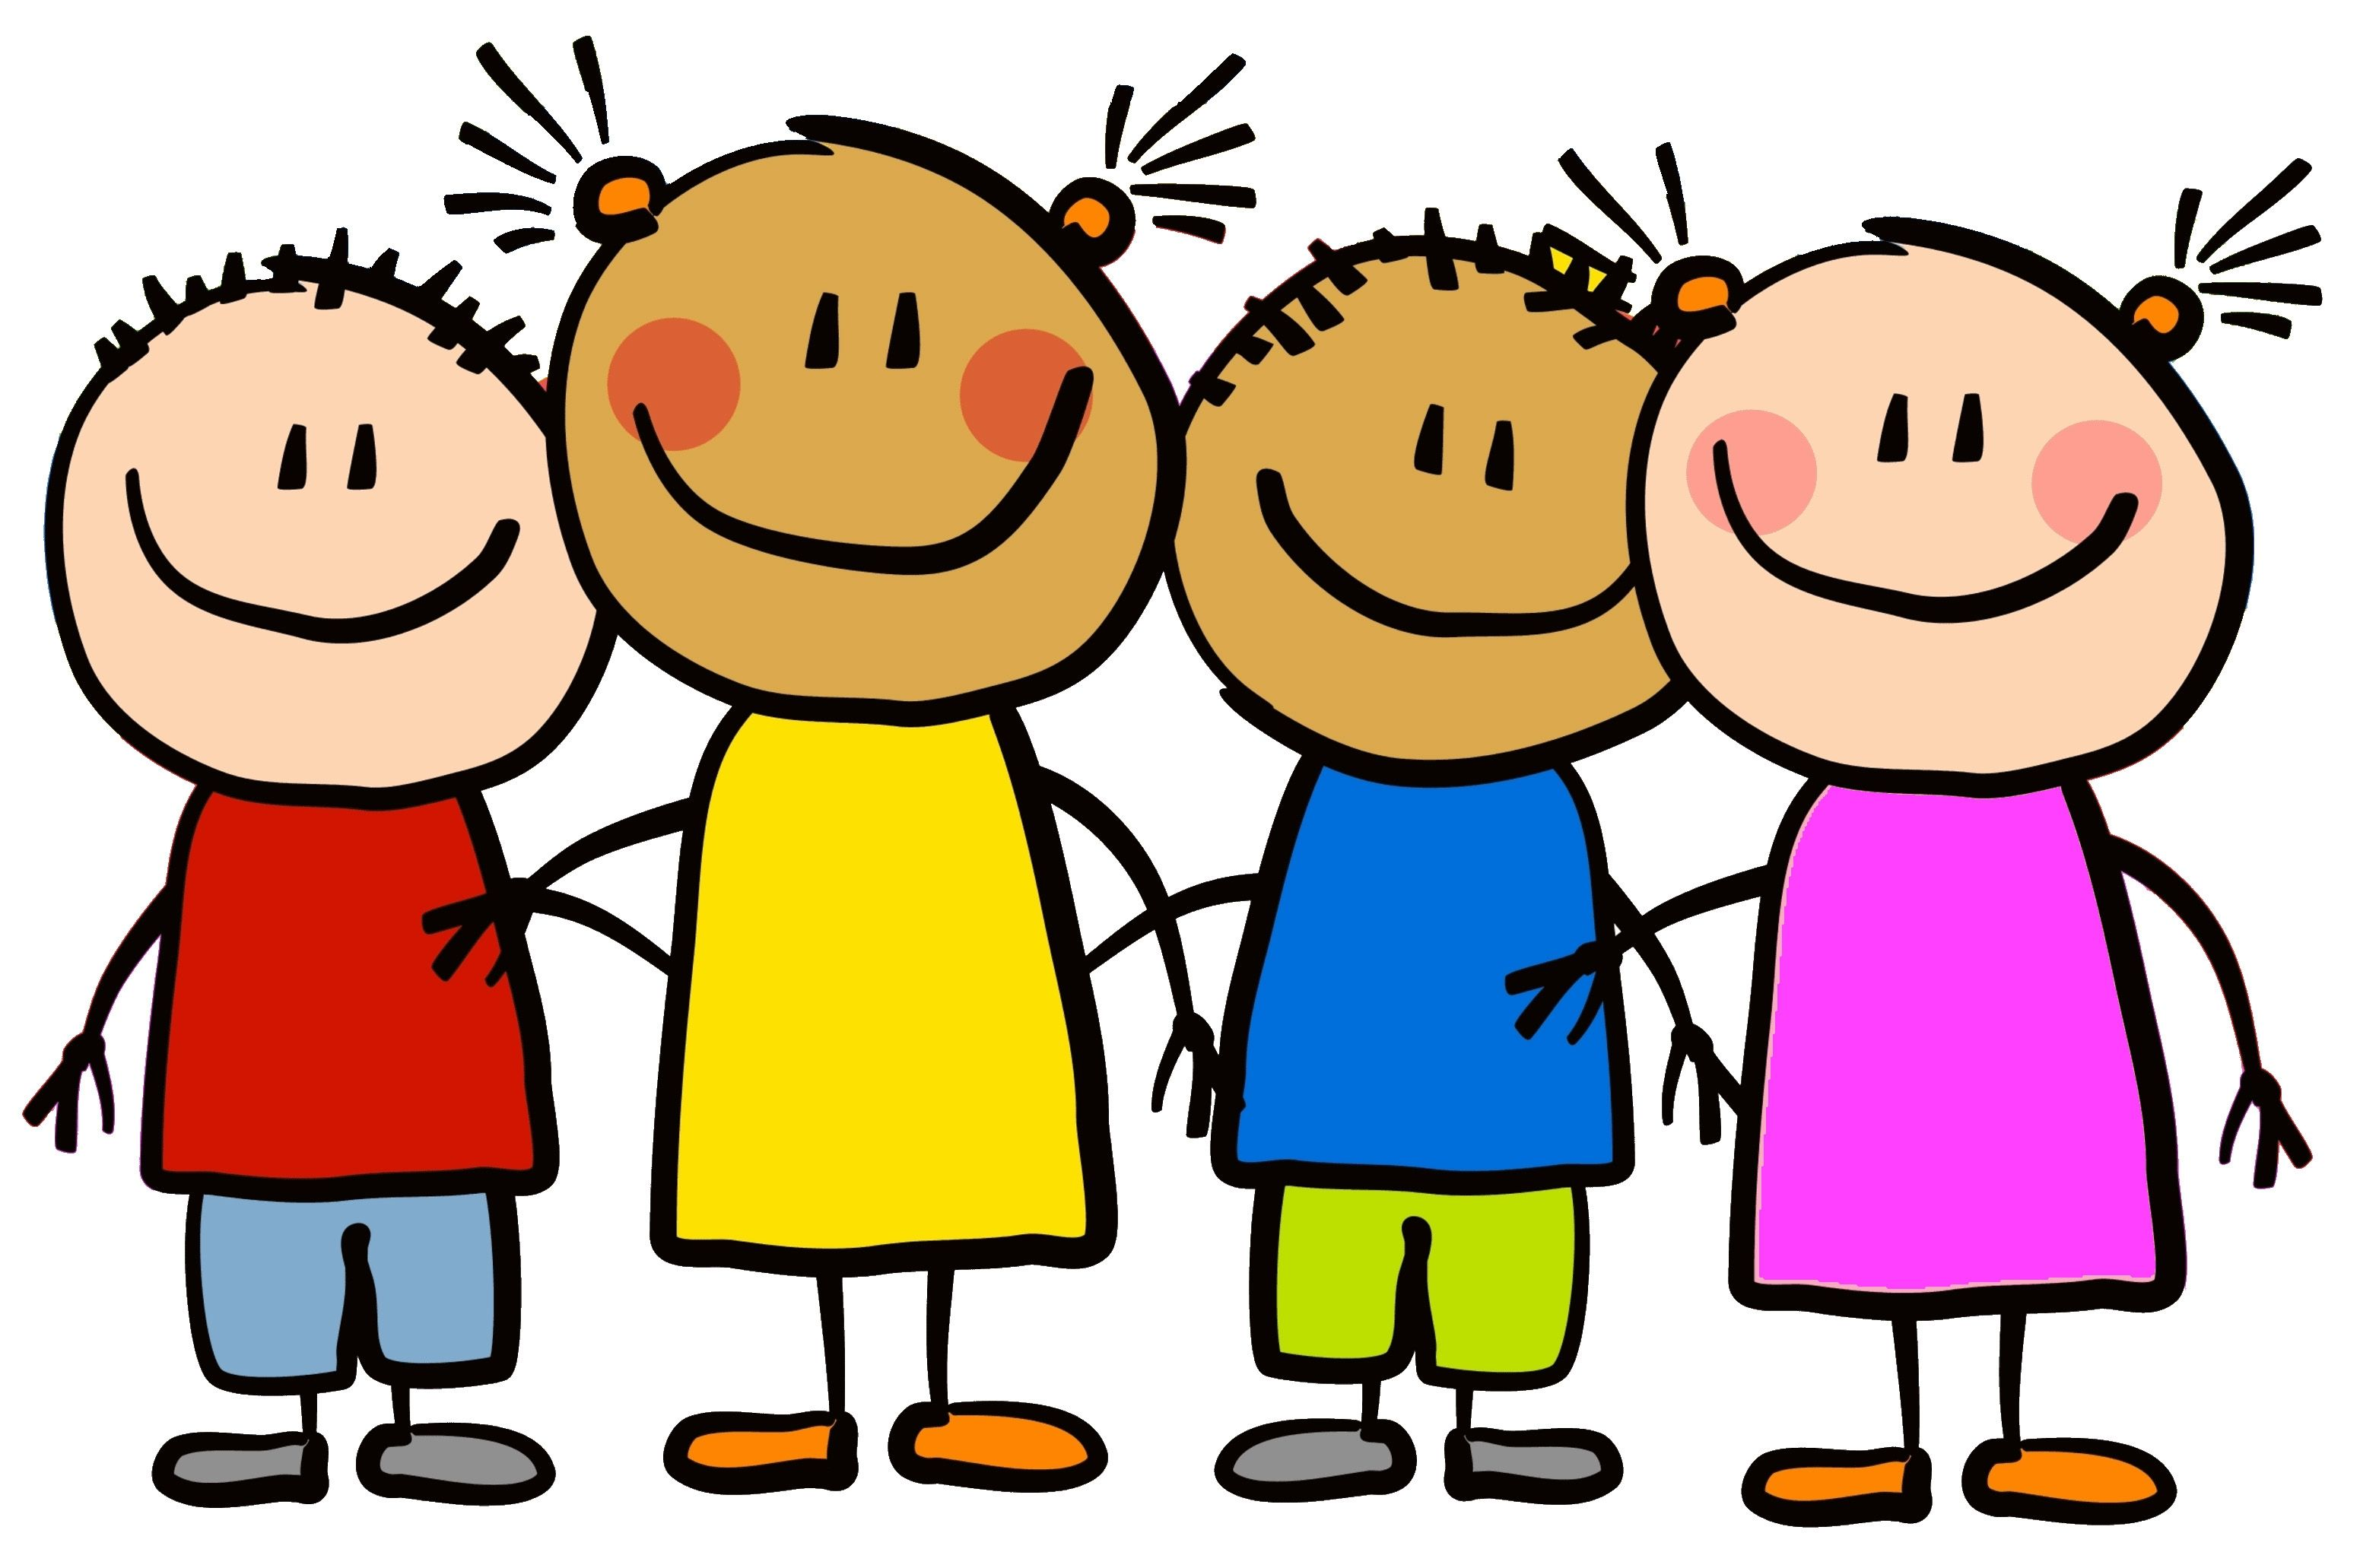 Preschool friends clipart.